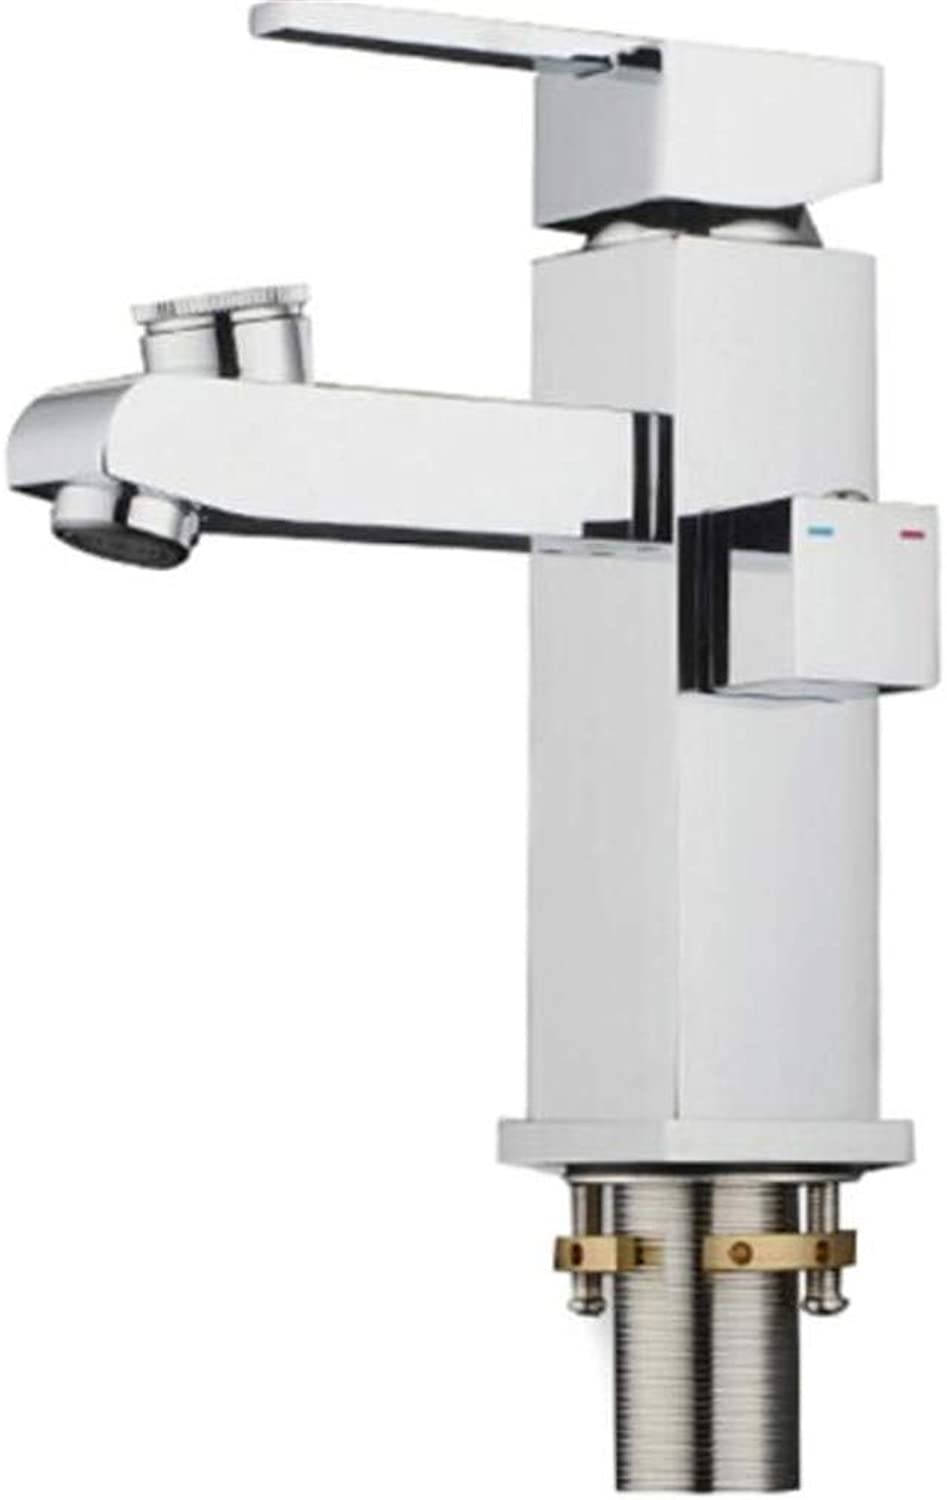 Taps Mixer?Swivel?Faucet Sink Dual Cold and Hot Faucets for Washbasin